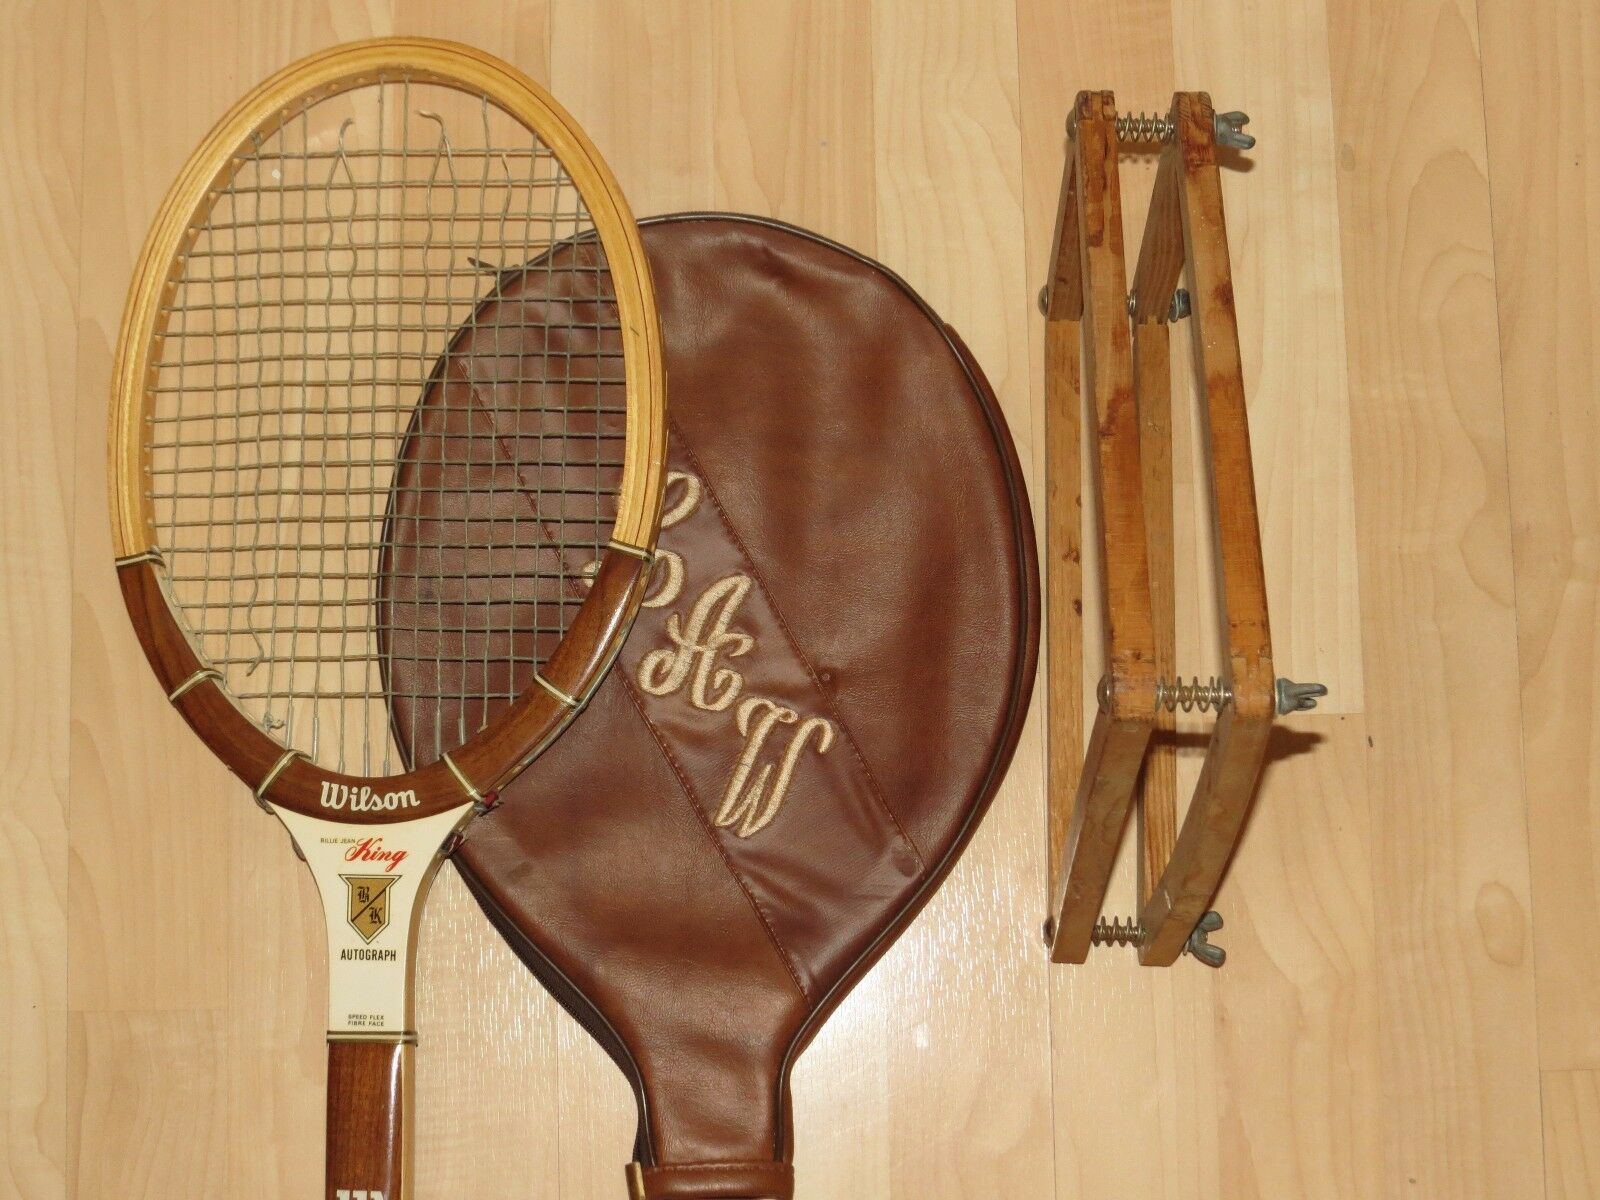 Wilson Wood Frame Collectors Racquet Guard, Endorsed by Billy Jean King,4-1 2